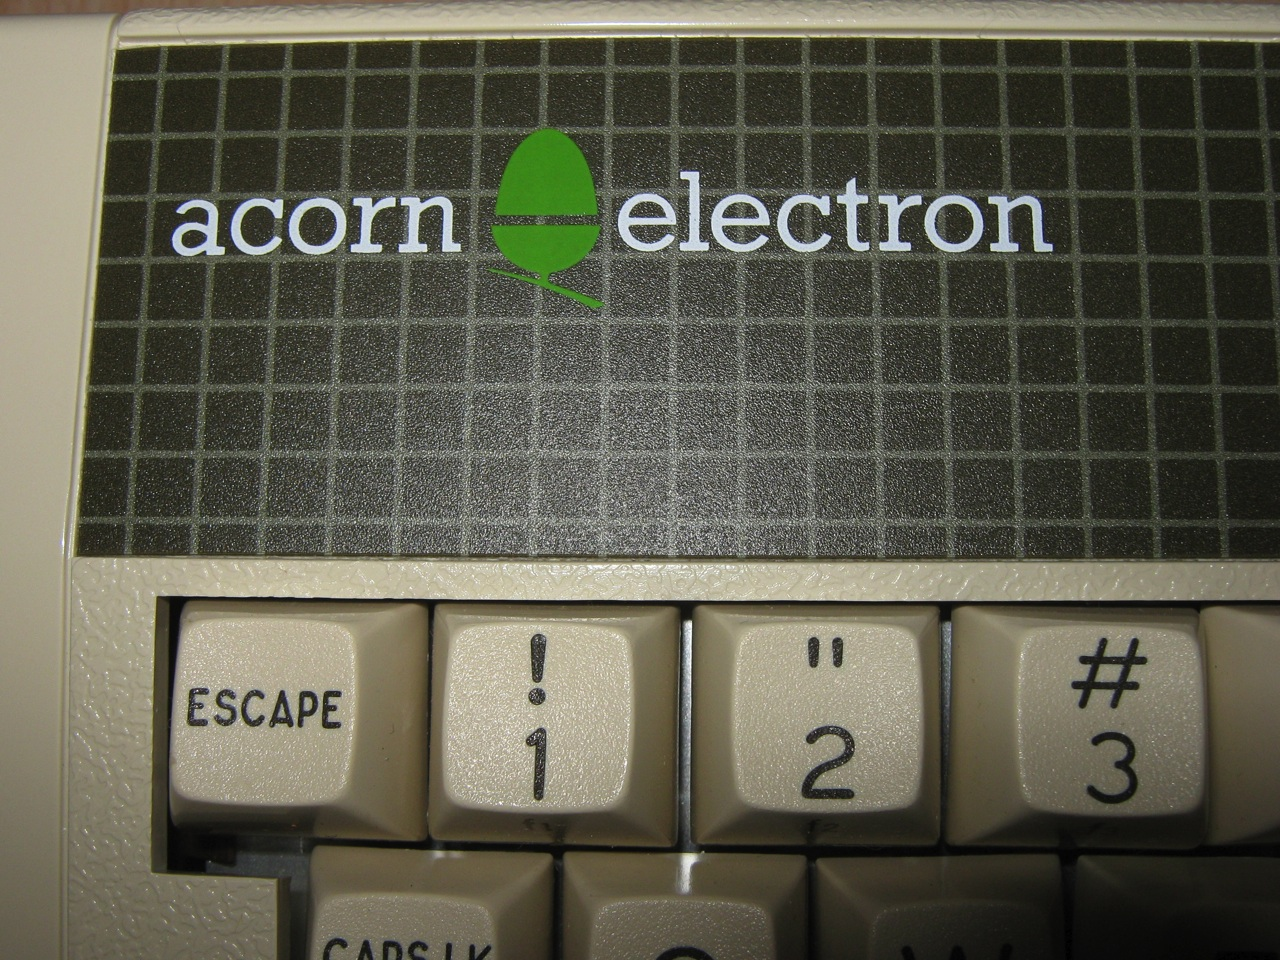 http://www.nightfallcrew.com/wp-content/gallery/acorn-electron-boxed/IMG_4456.jpg